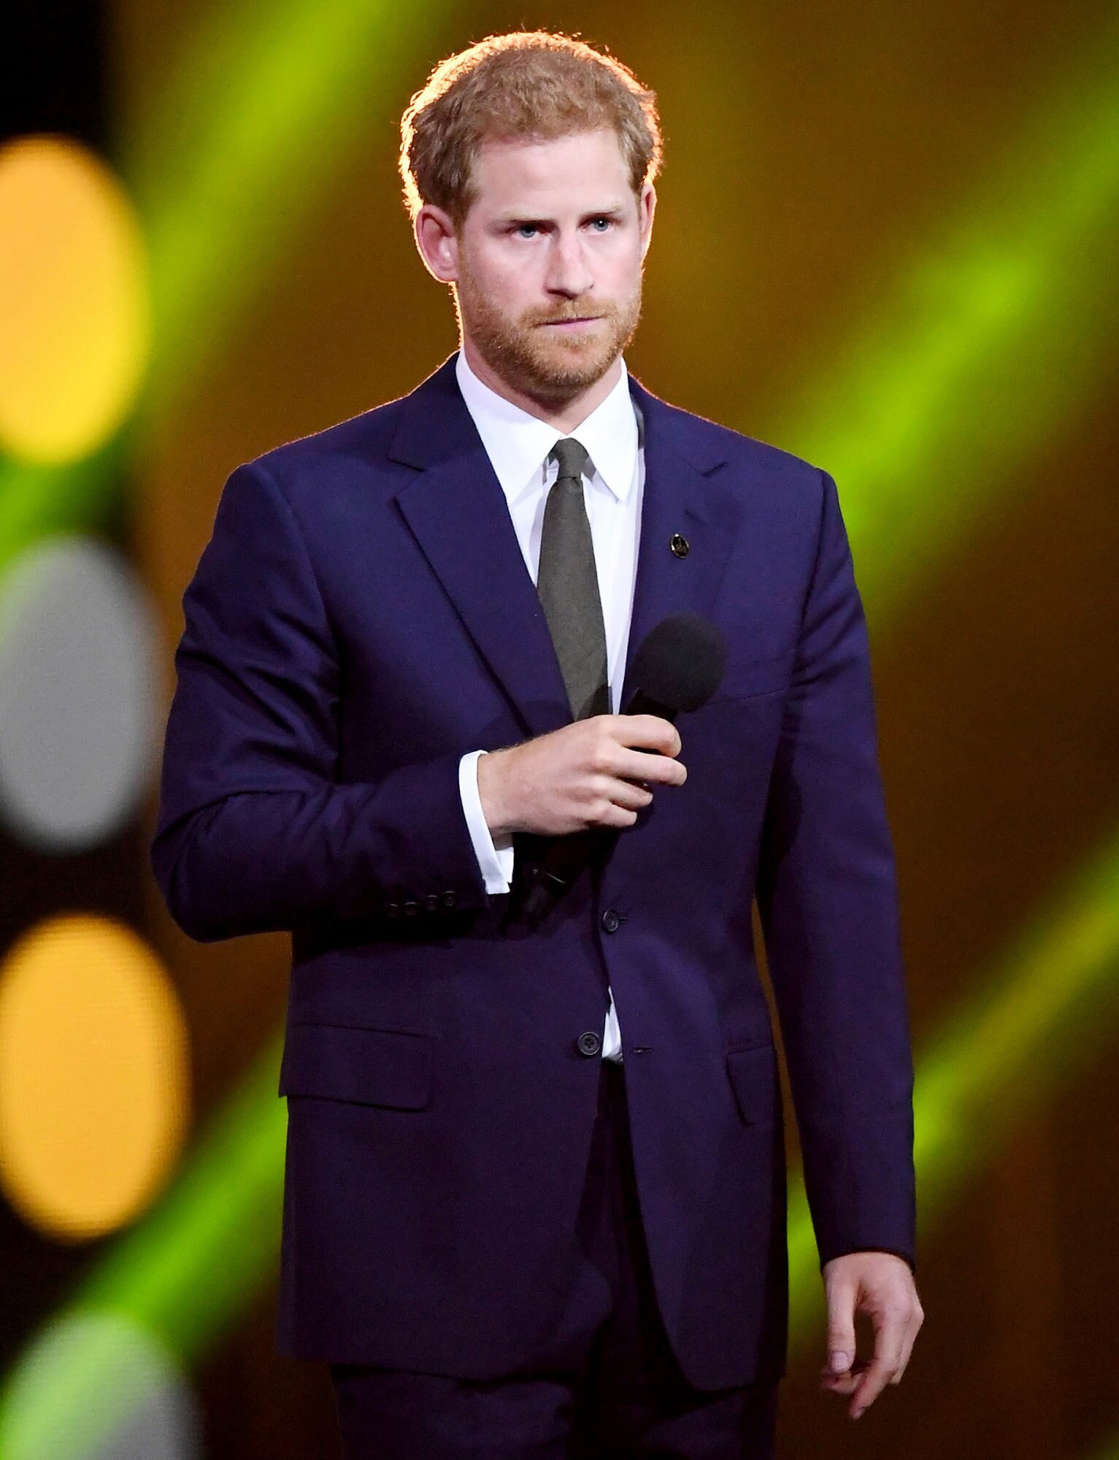 Prince Harry wearing a suit and tie: Samir Hussein/WireImage Prince Harry